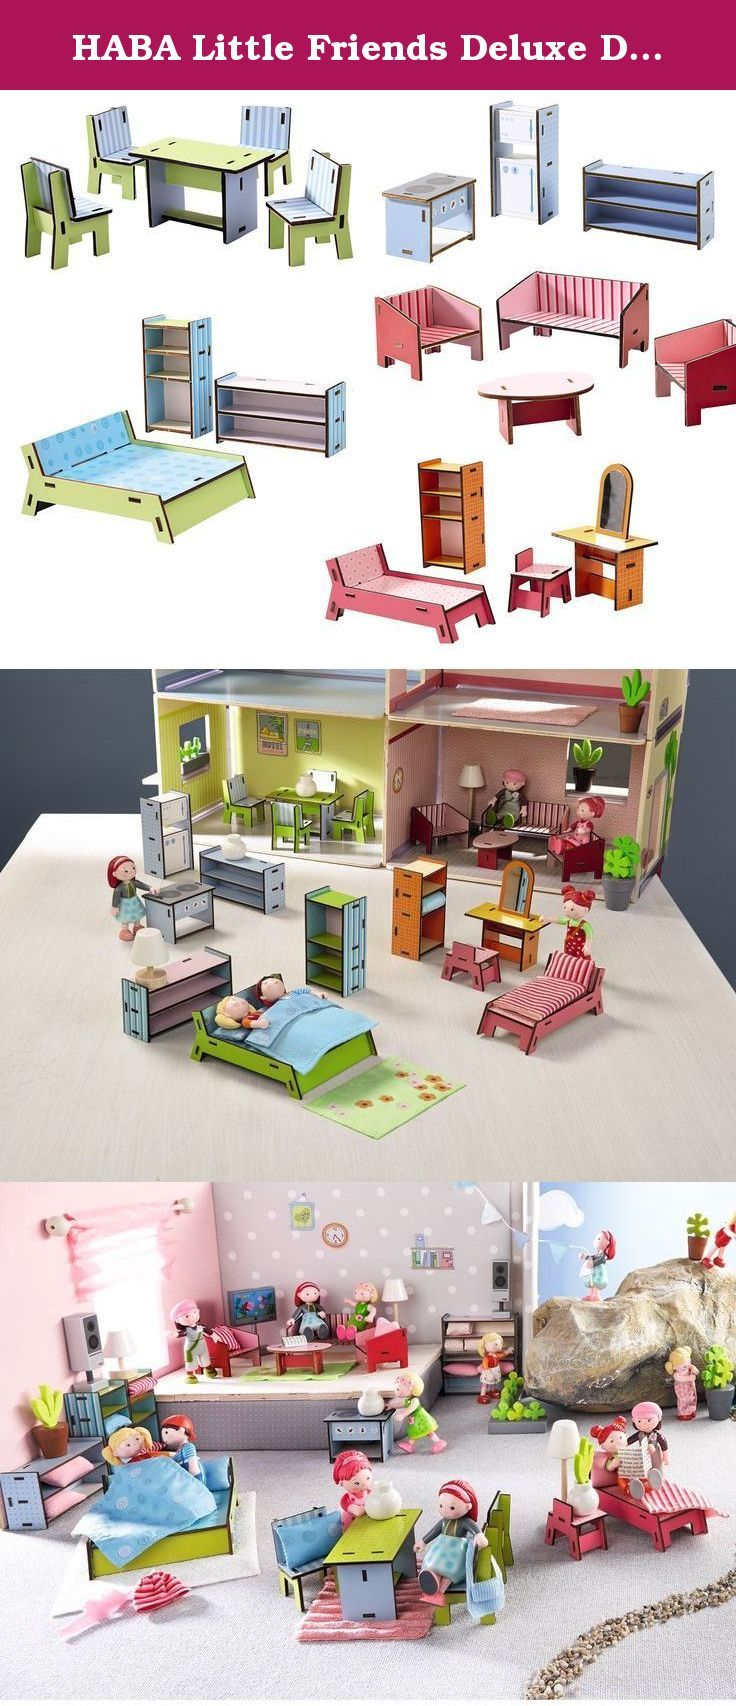 """HABA Little Friends Deluxe Dollhouse Furniture Set with 5 Rooms (19 Pieces) for Villa Sunshine. Furnish the entire Villa Sunshine with this complete set! Featuring a dining room table and 4 chairs, stove, freezer/fridge combo and shelf, 3-piece living room set including couch with coffee table, double bed with two shelving units, single bed with tall shelf and vanity table with mirror and chair. Made of sturdy plywood. Stove height: 2"""", dining room table height: 2.75""""."""